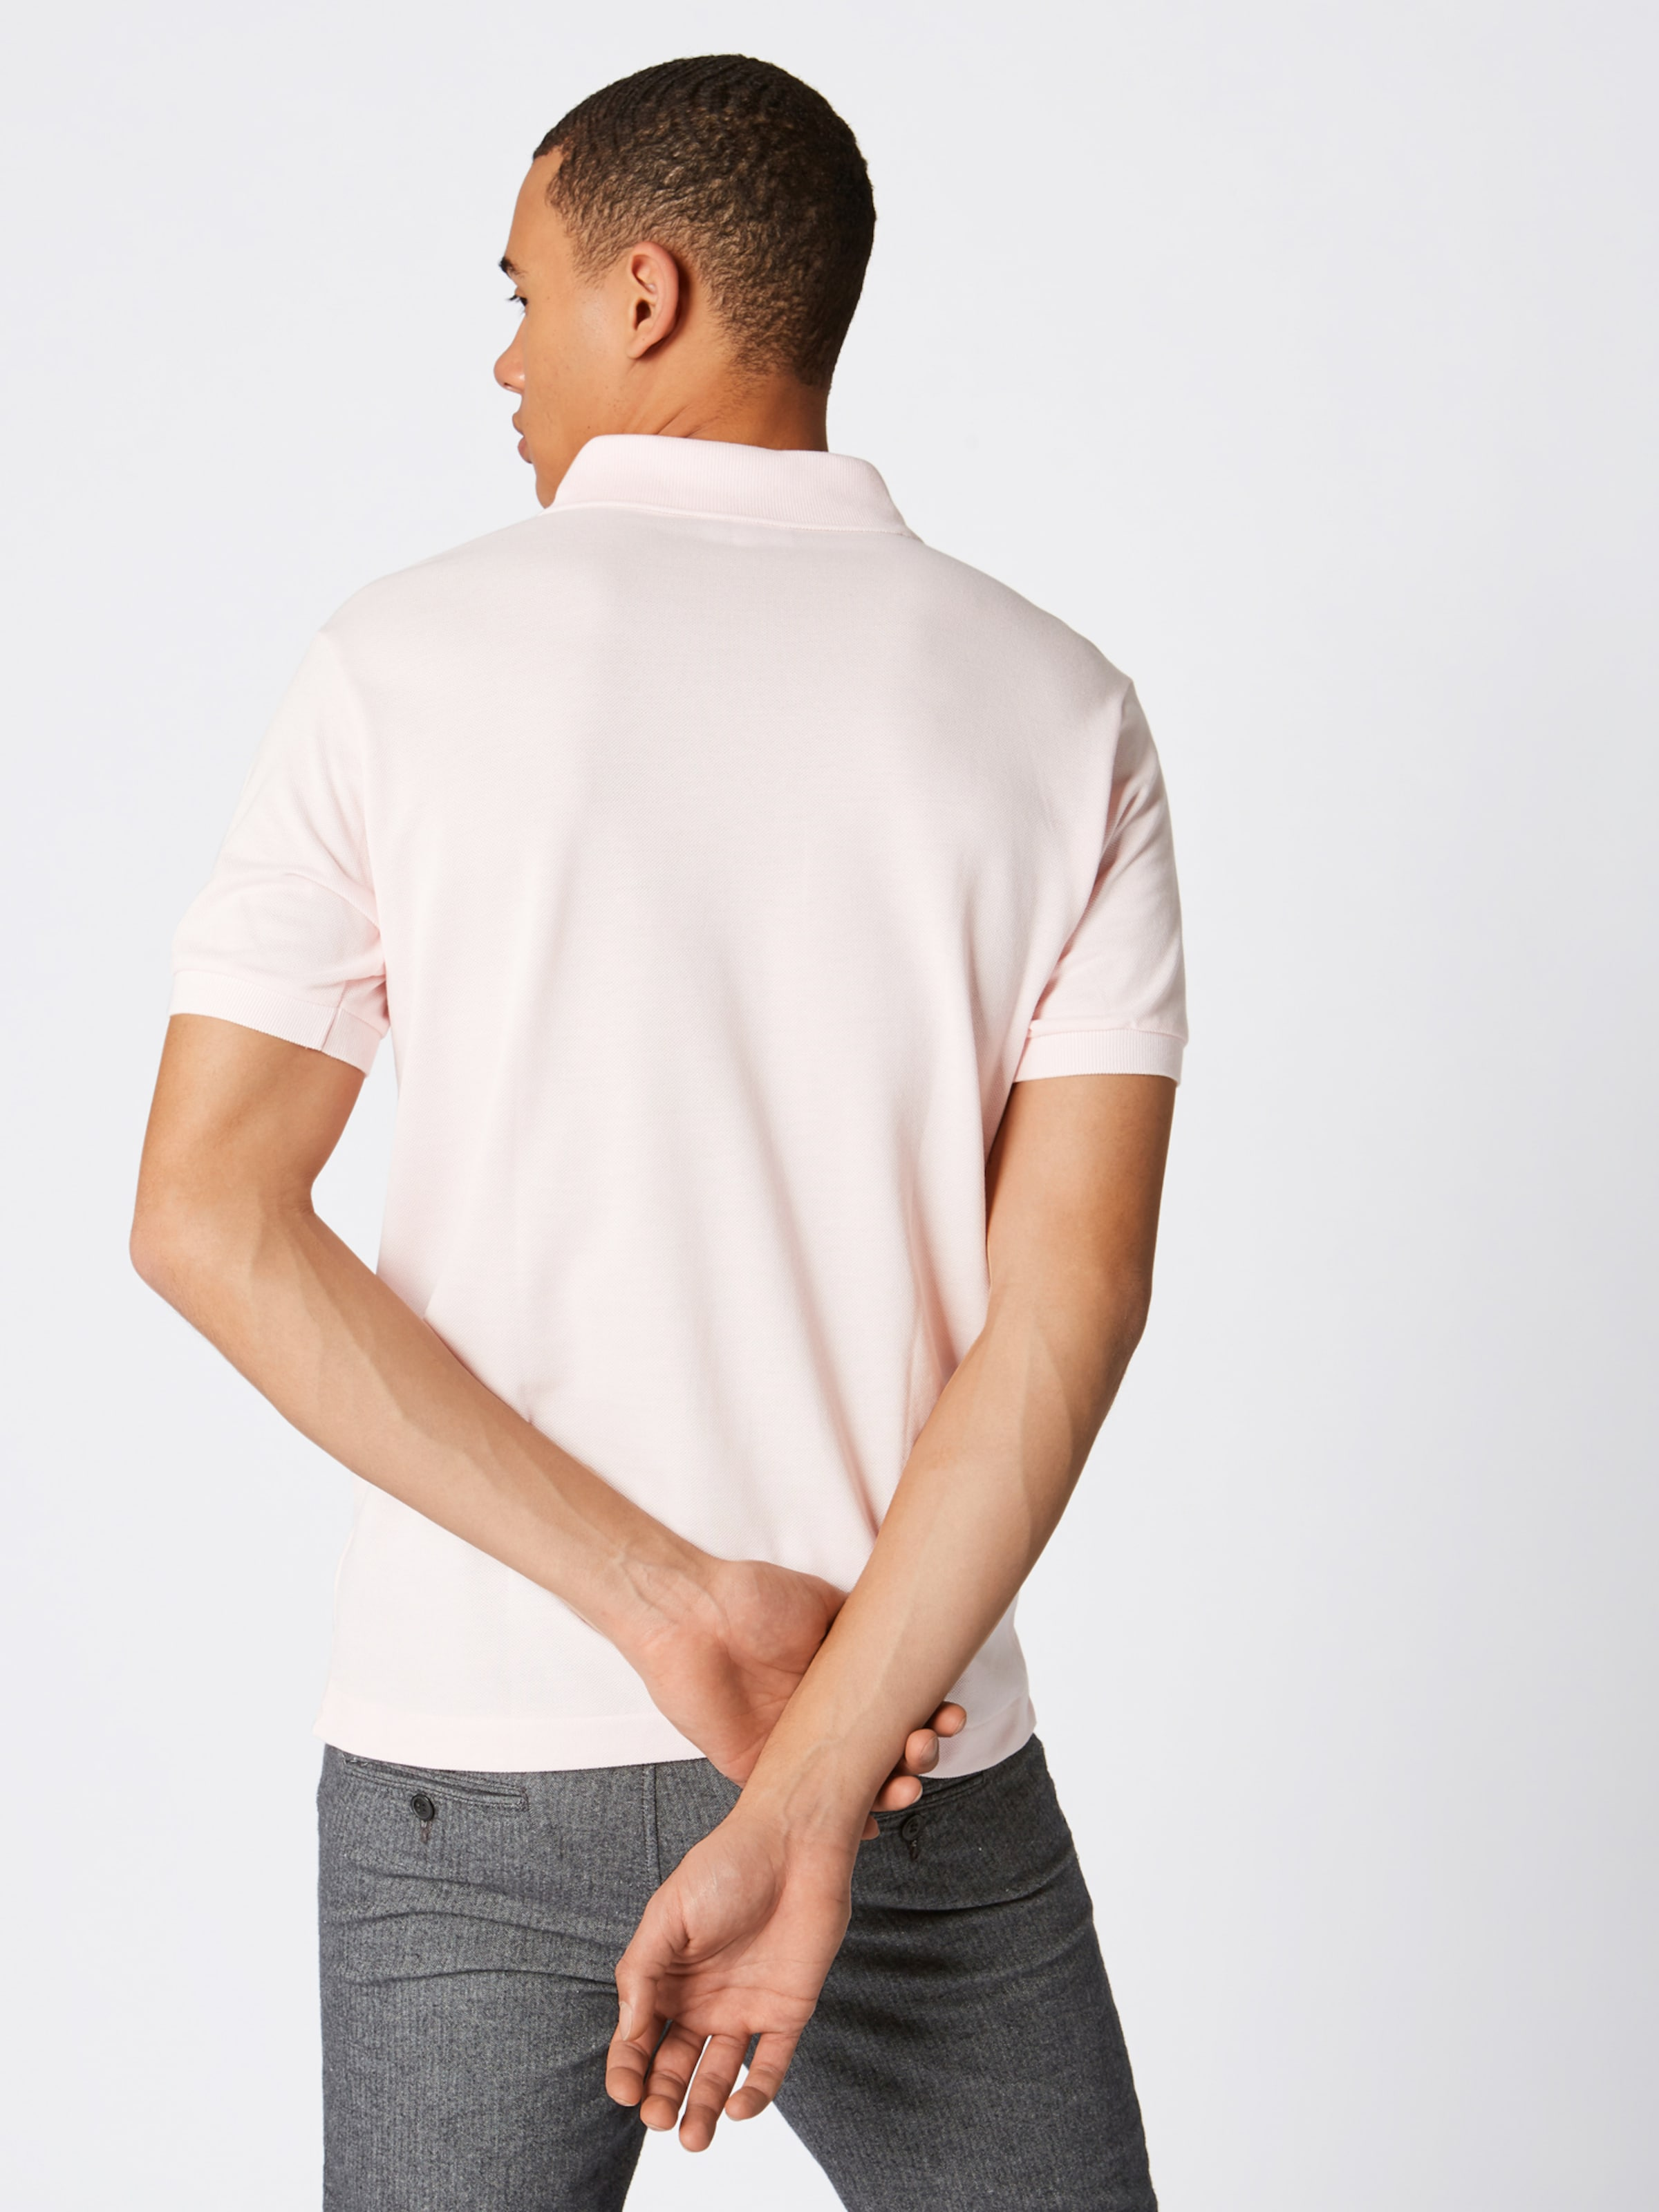 In Rosa Poloshirt Lacoste Lacoste Lacoste In Poloshirt Poloshirt In Lacoste Rosa Poloshirt Rosa J3F1cTlK